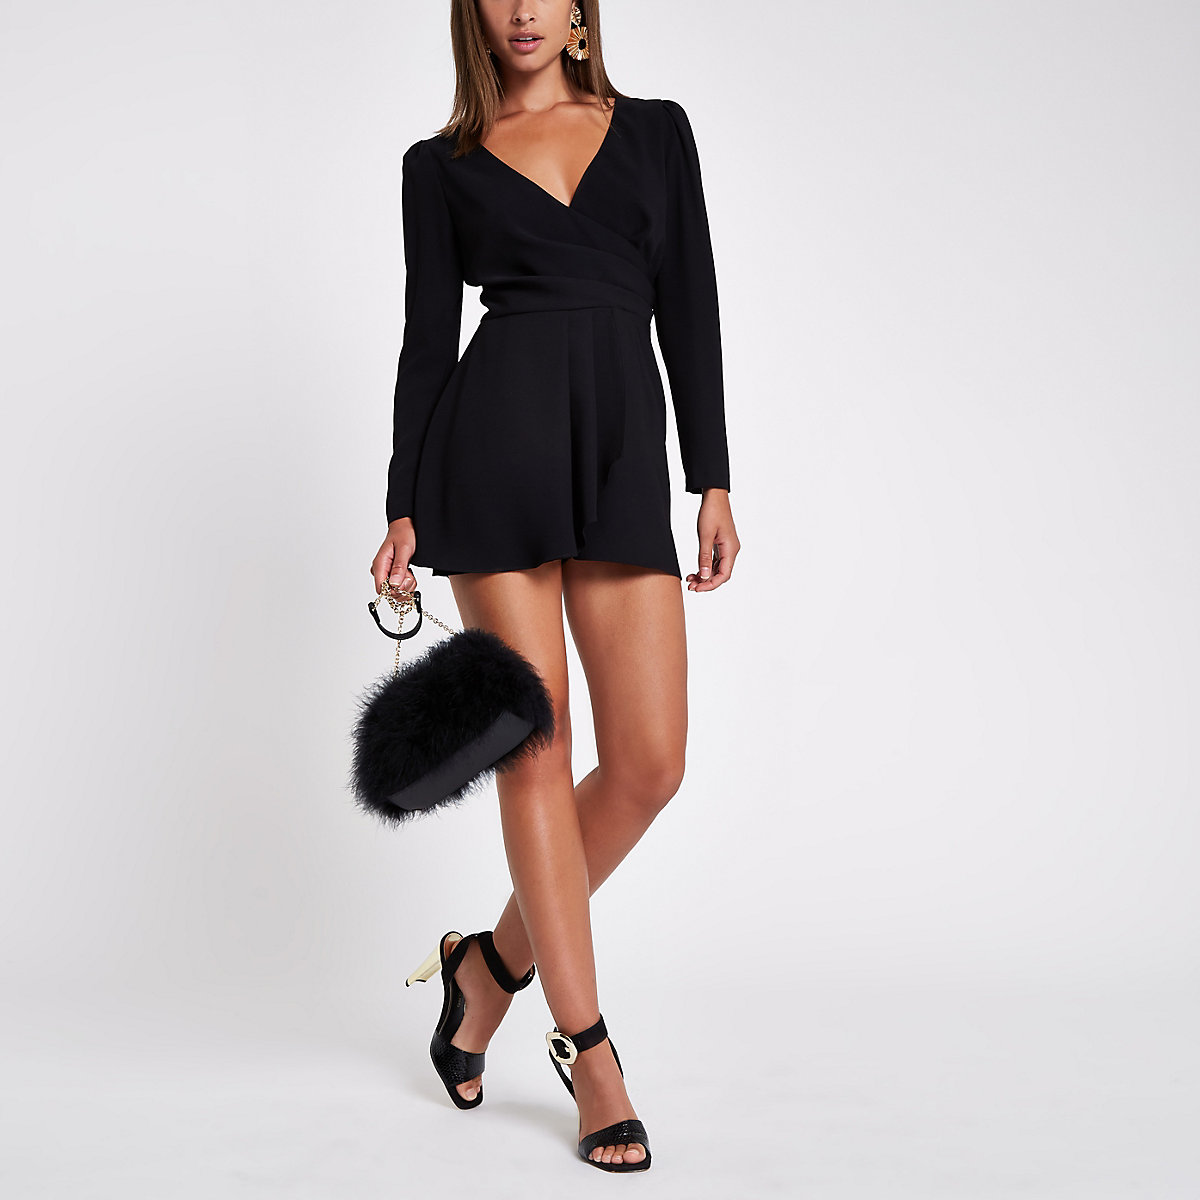 Black V neck wrap playsuit